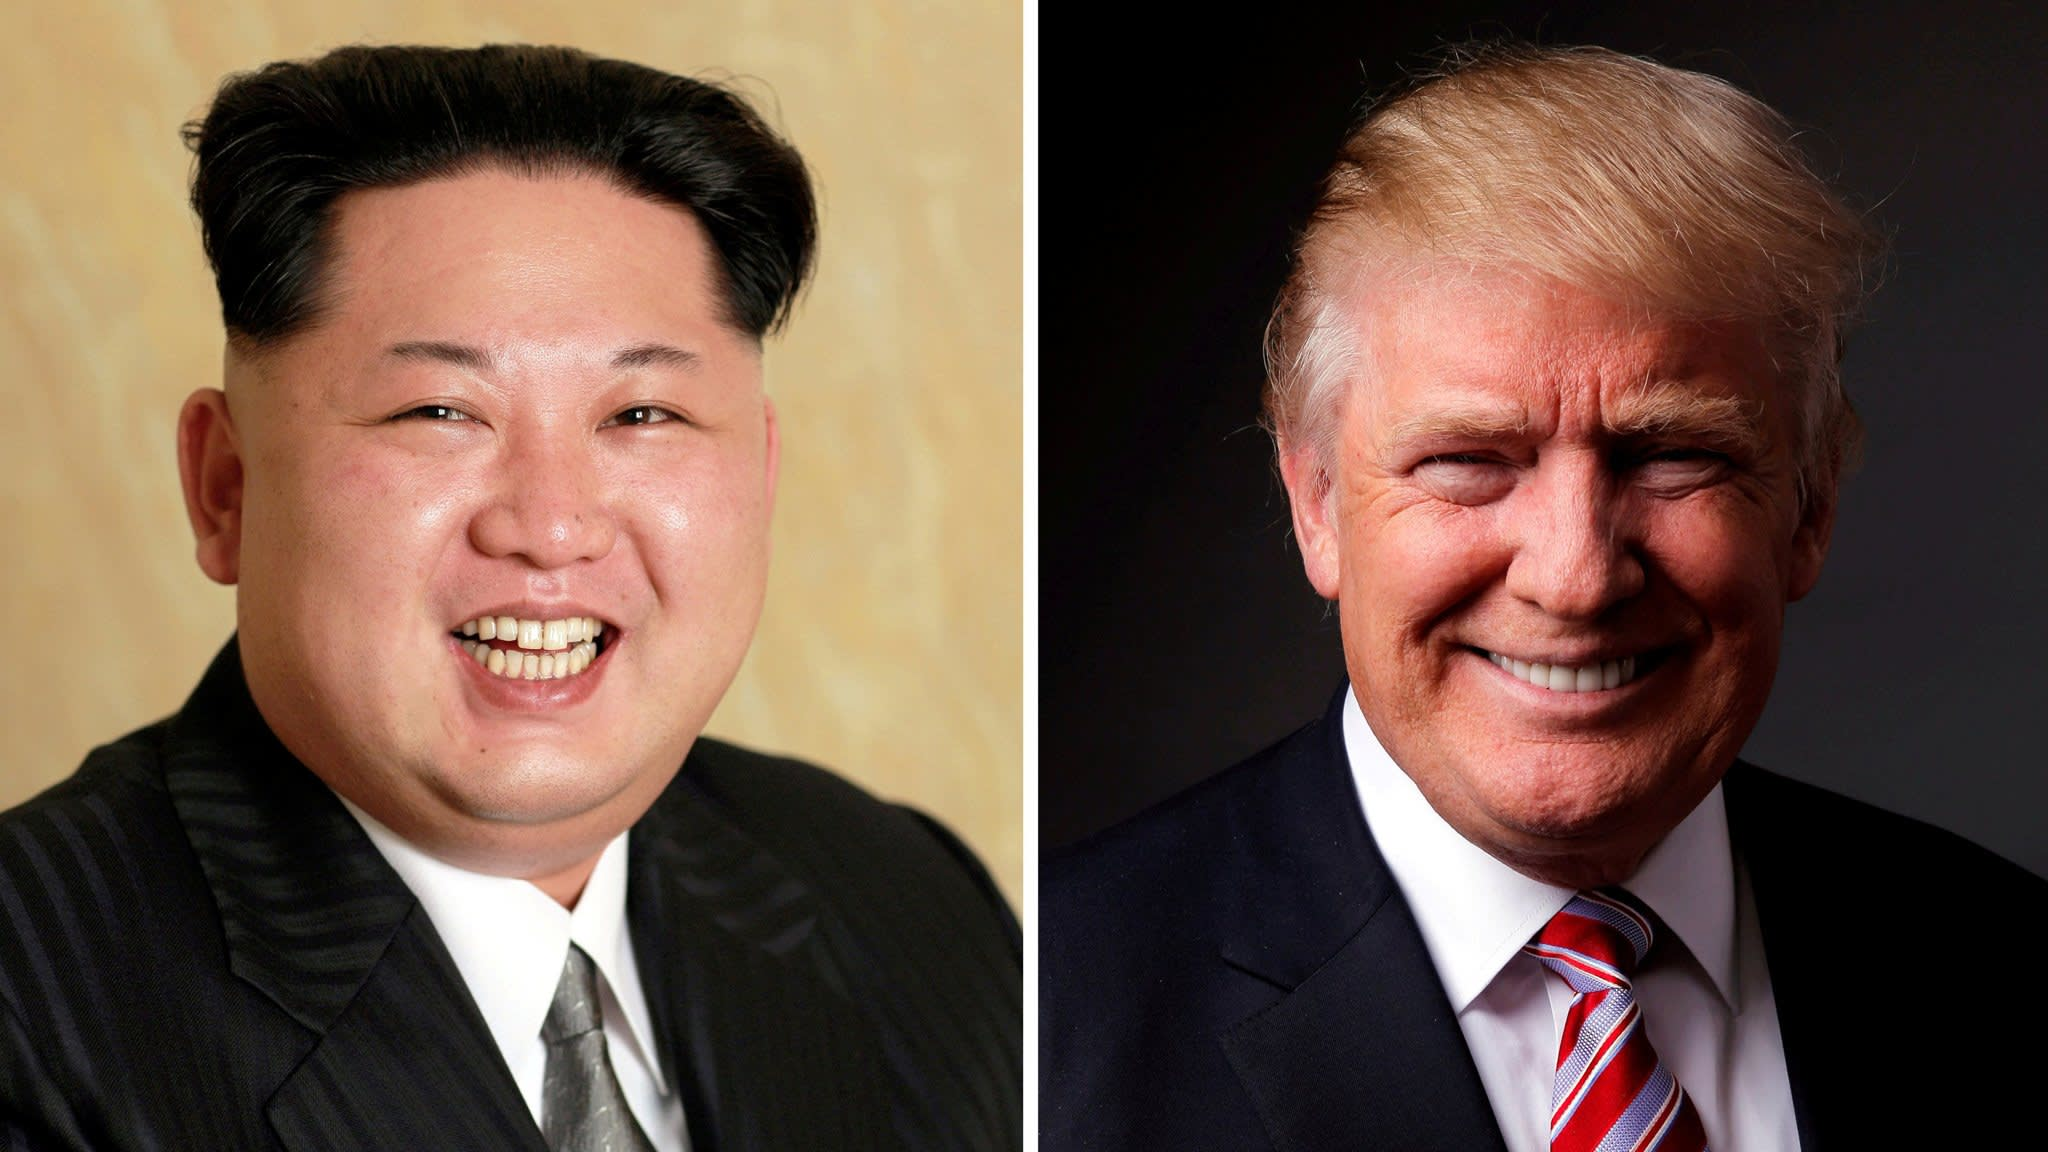 Donald Trump to meet Kim Jong Un, South Korea says